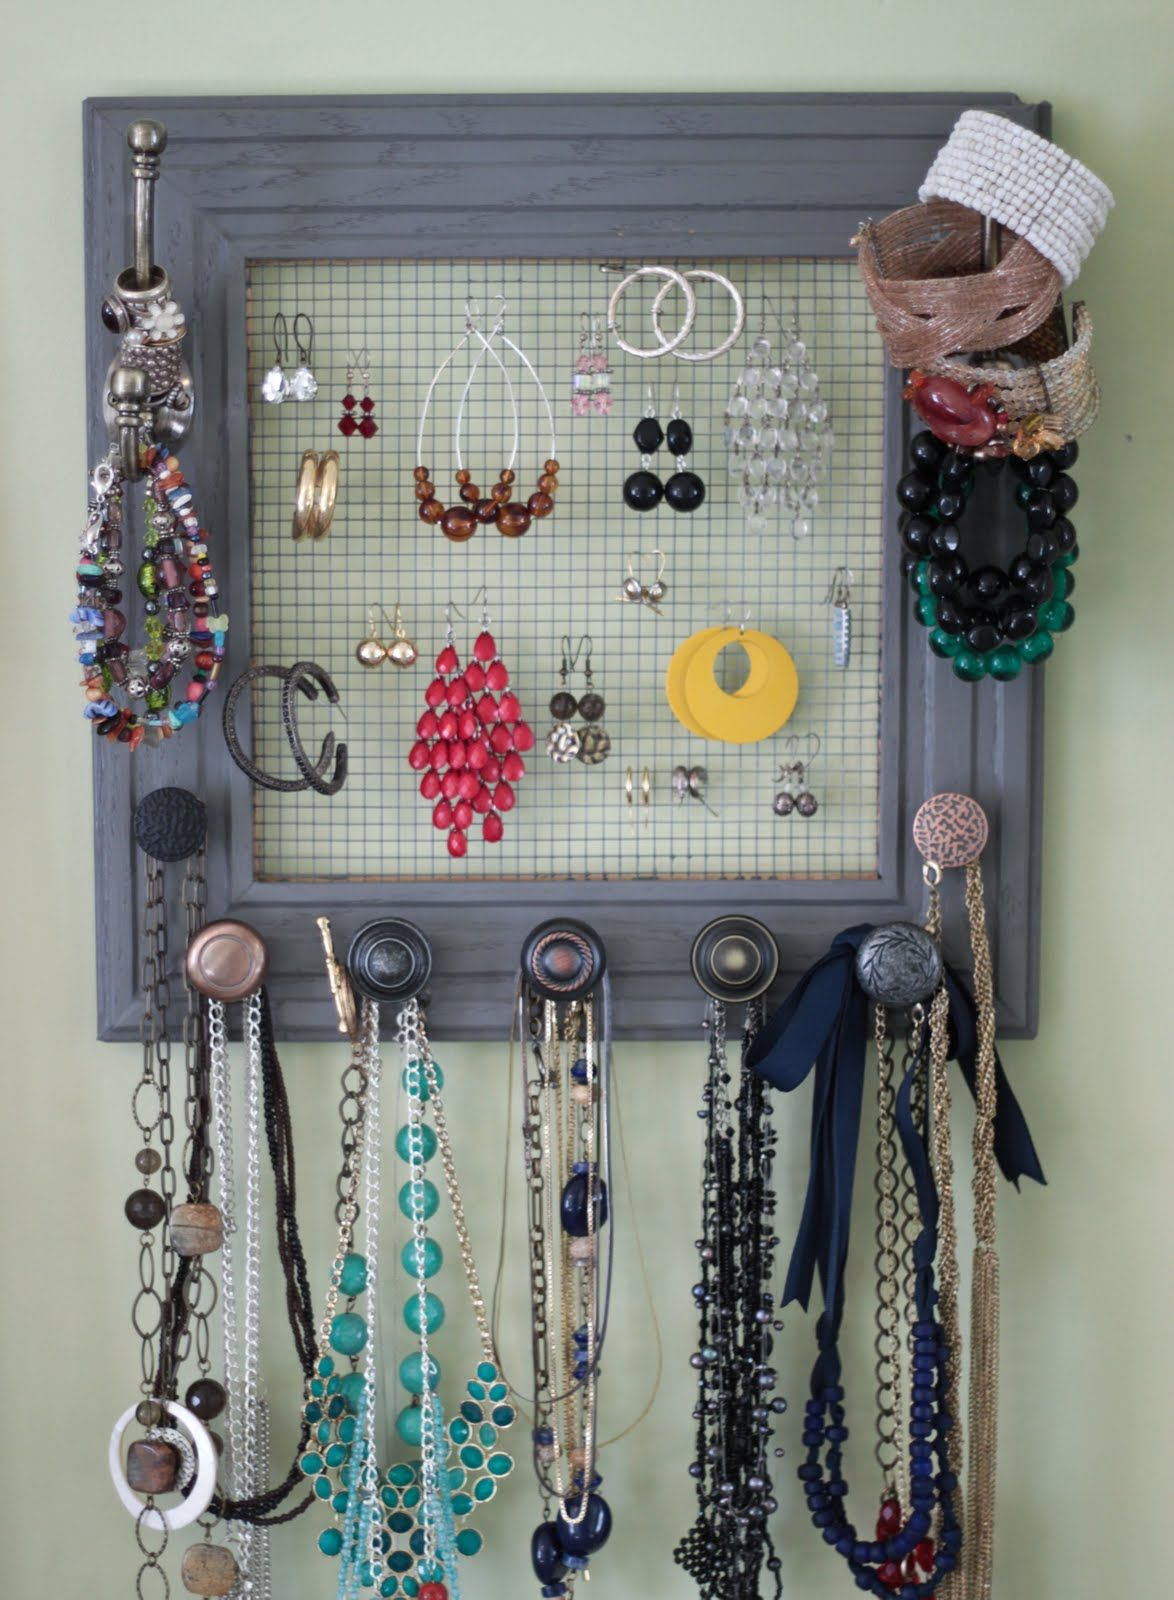 How To Frame Your Jewelry And Turn It Into Wall Décor | Diy jewelry ...